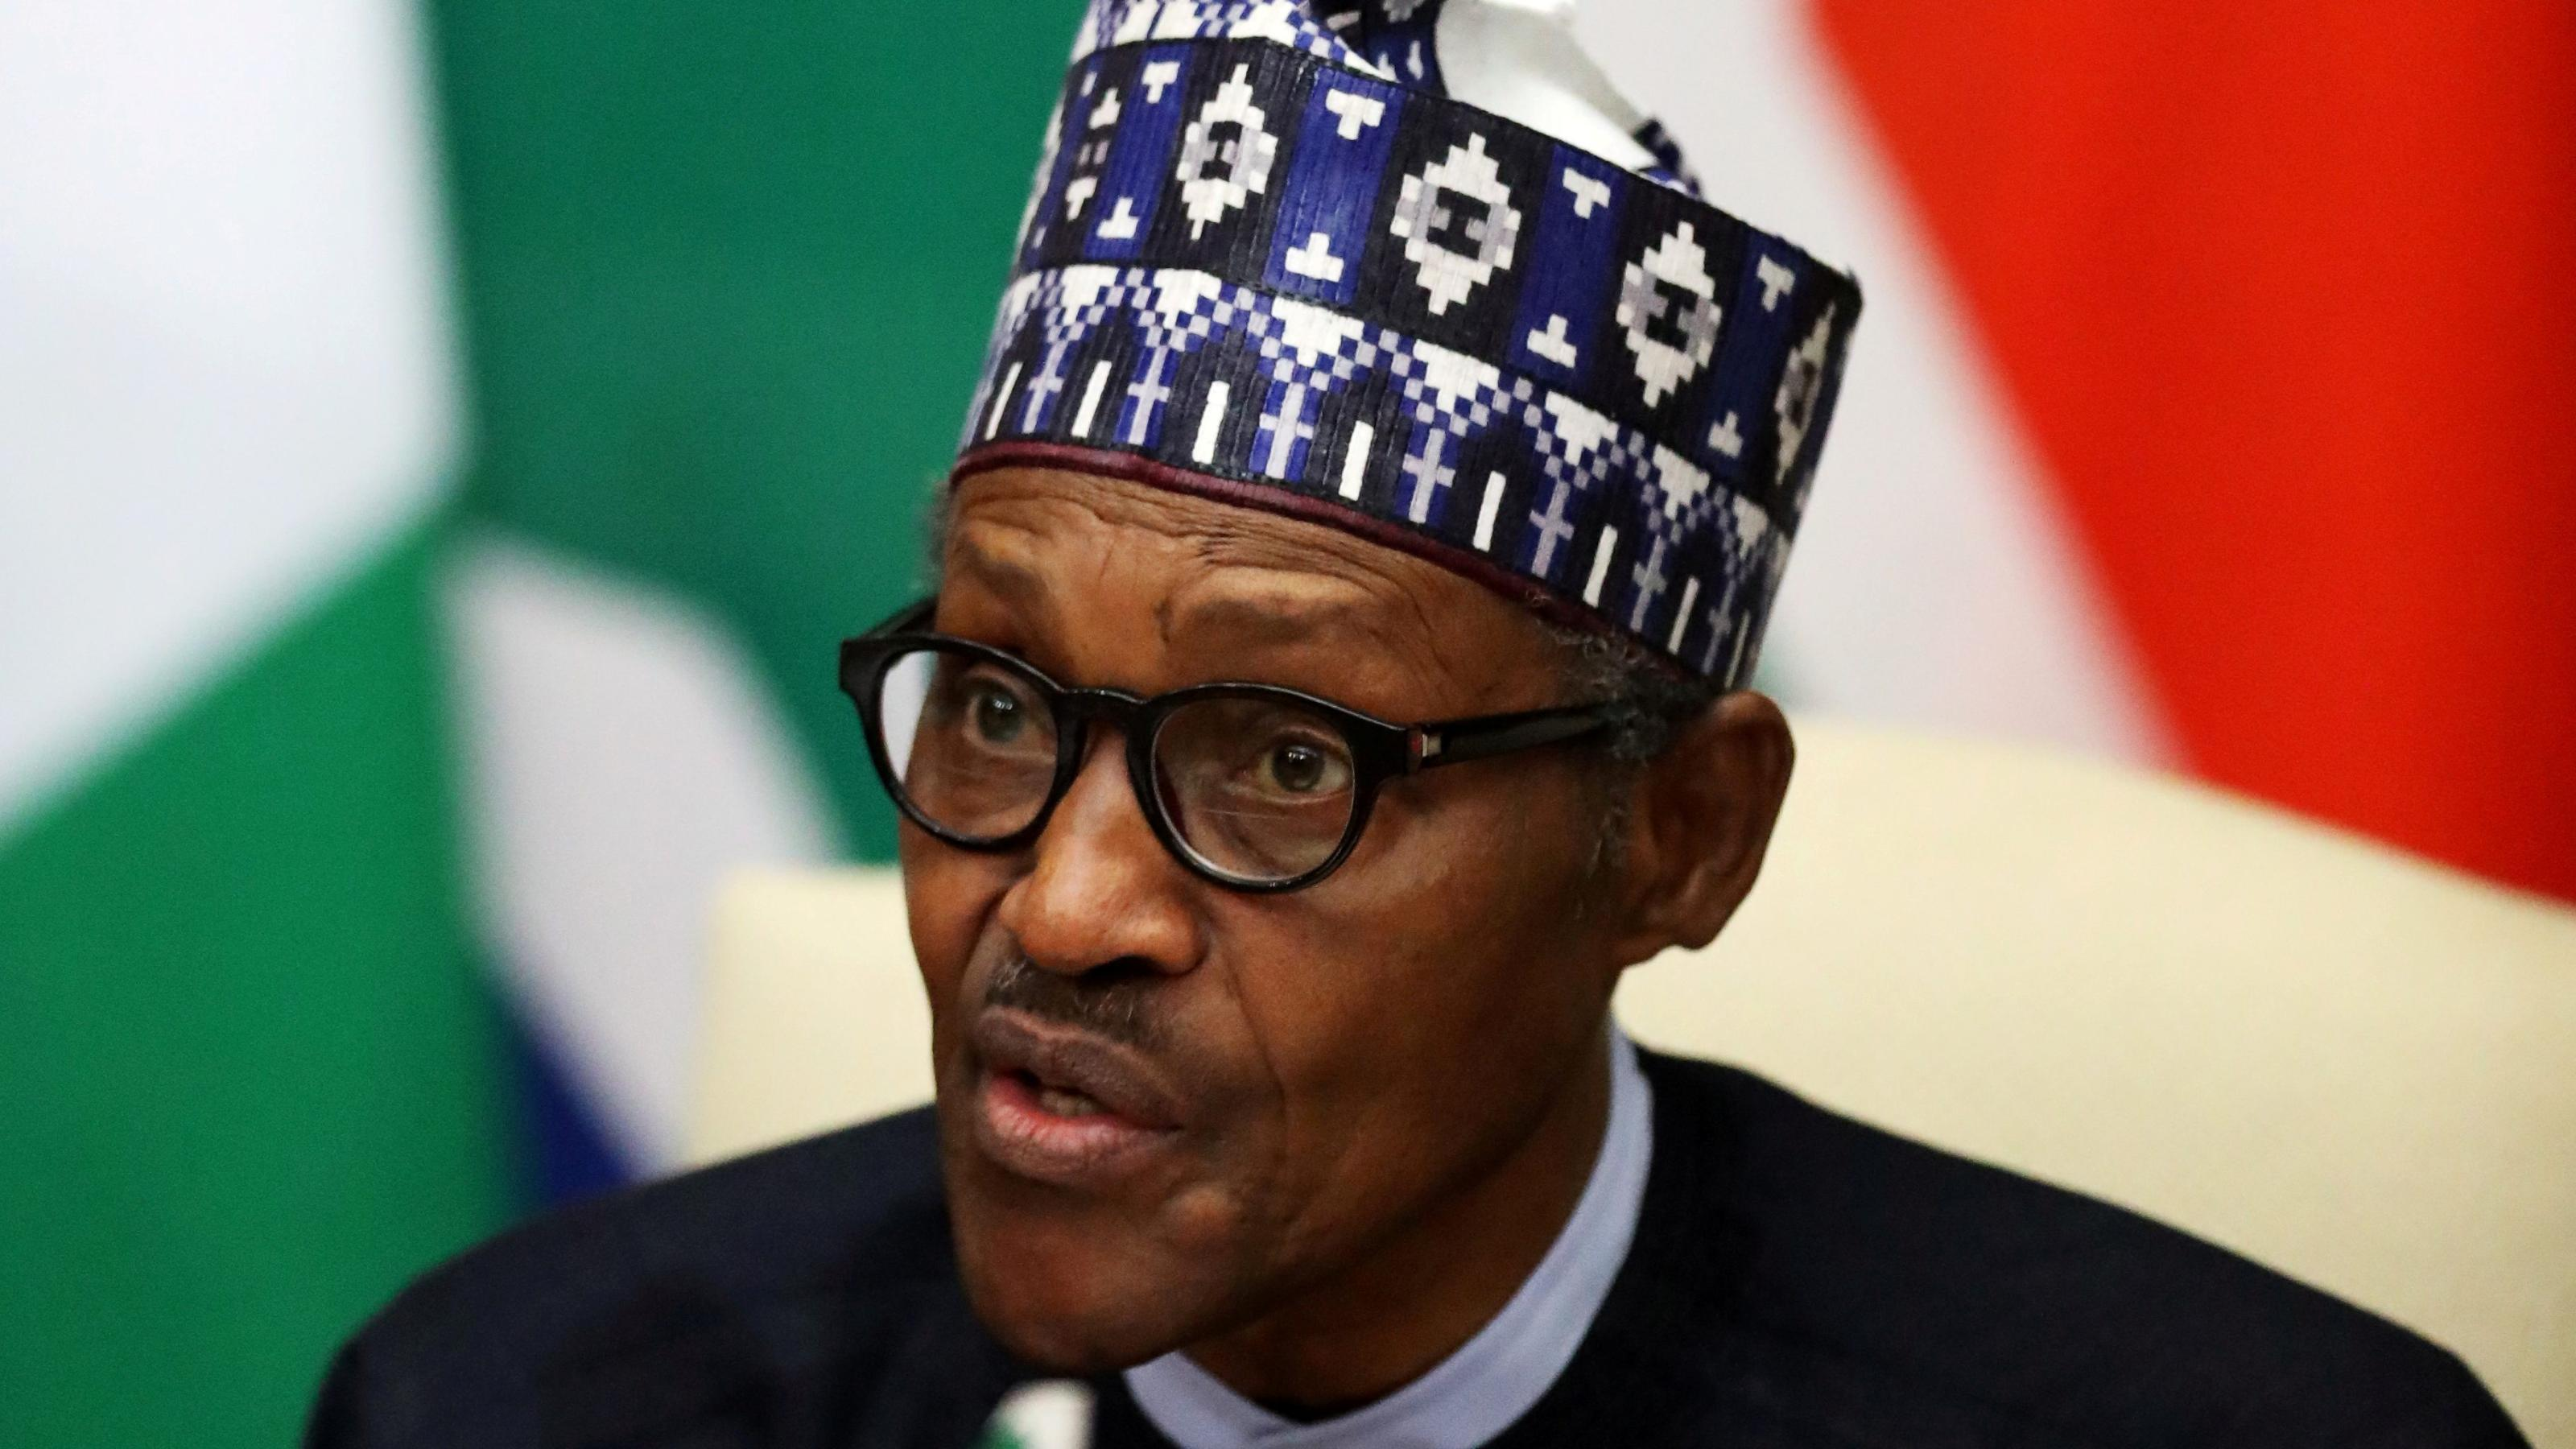 Nigeria president Buhari promises visa on arrival for Africans